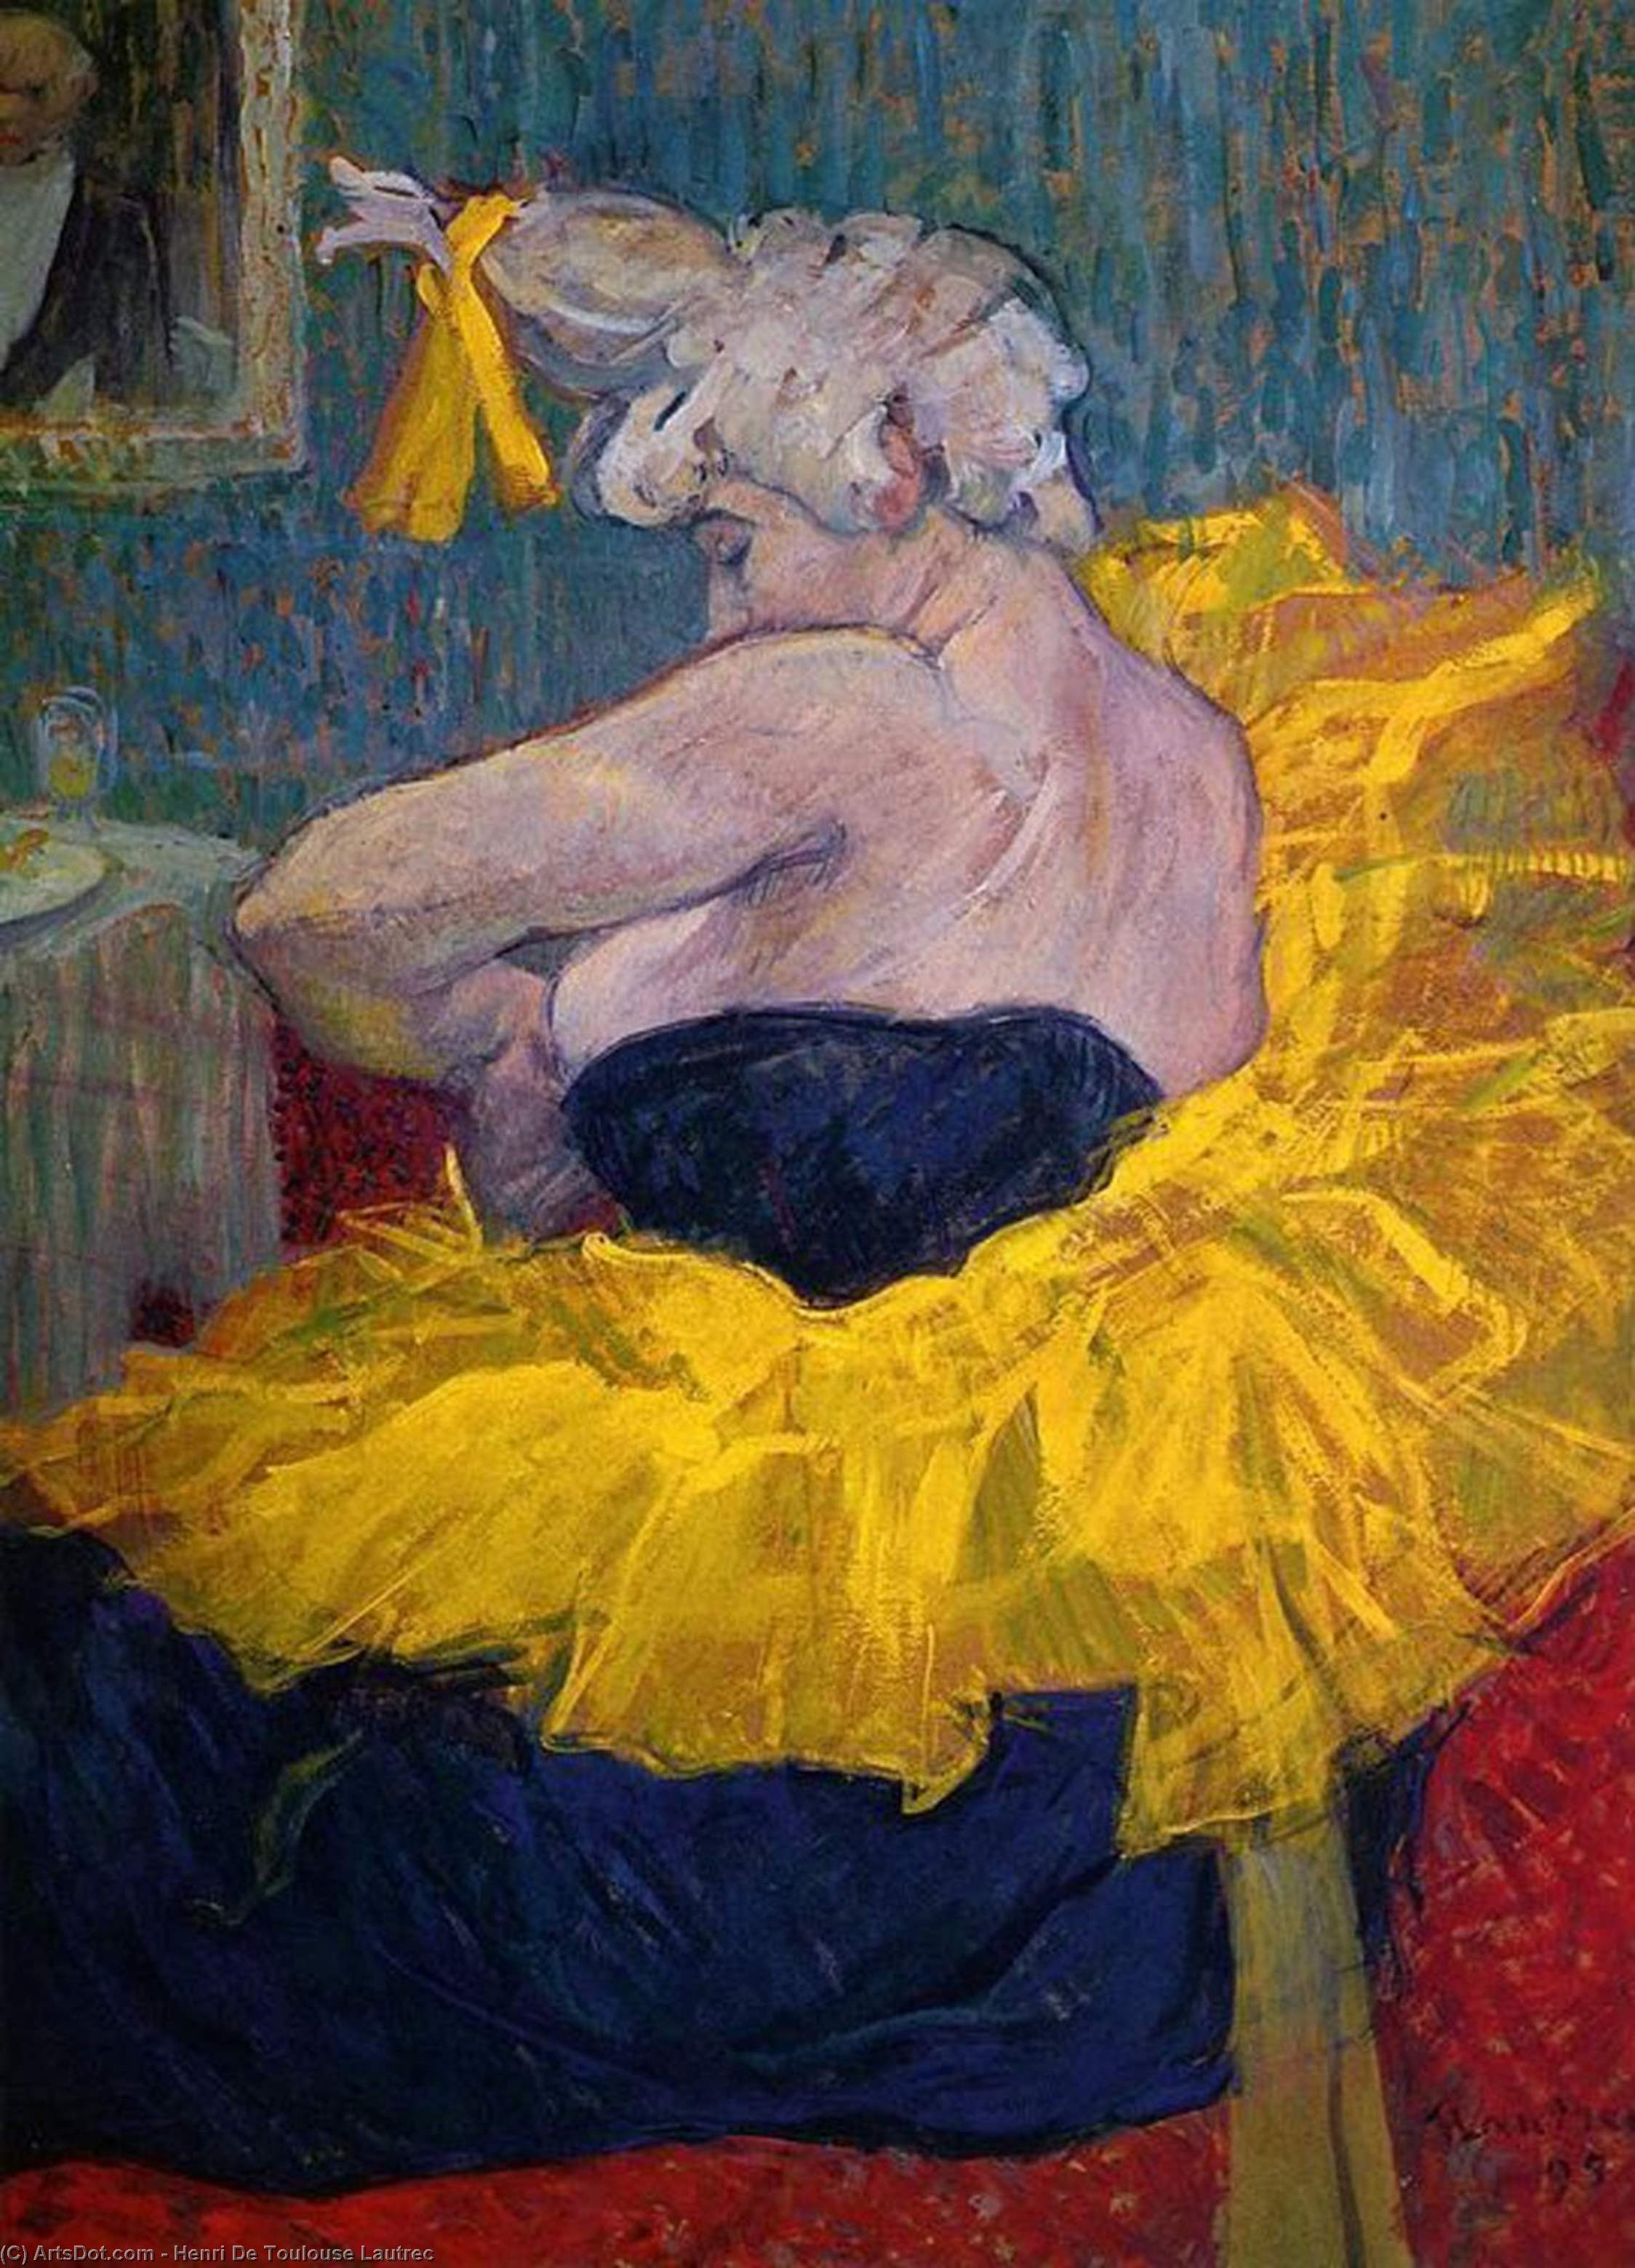 The Clowness Cha-U-Kao Fastening Her Bodice, Oil On Panel by Henri De Toulouse Lautrec (1864-1901, France)